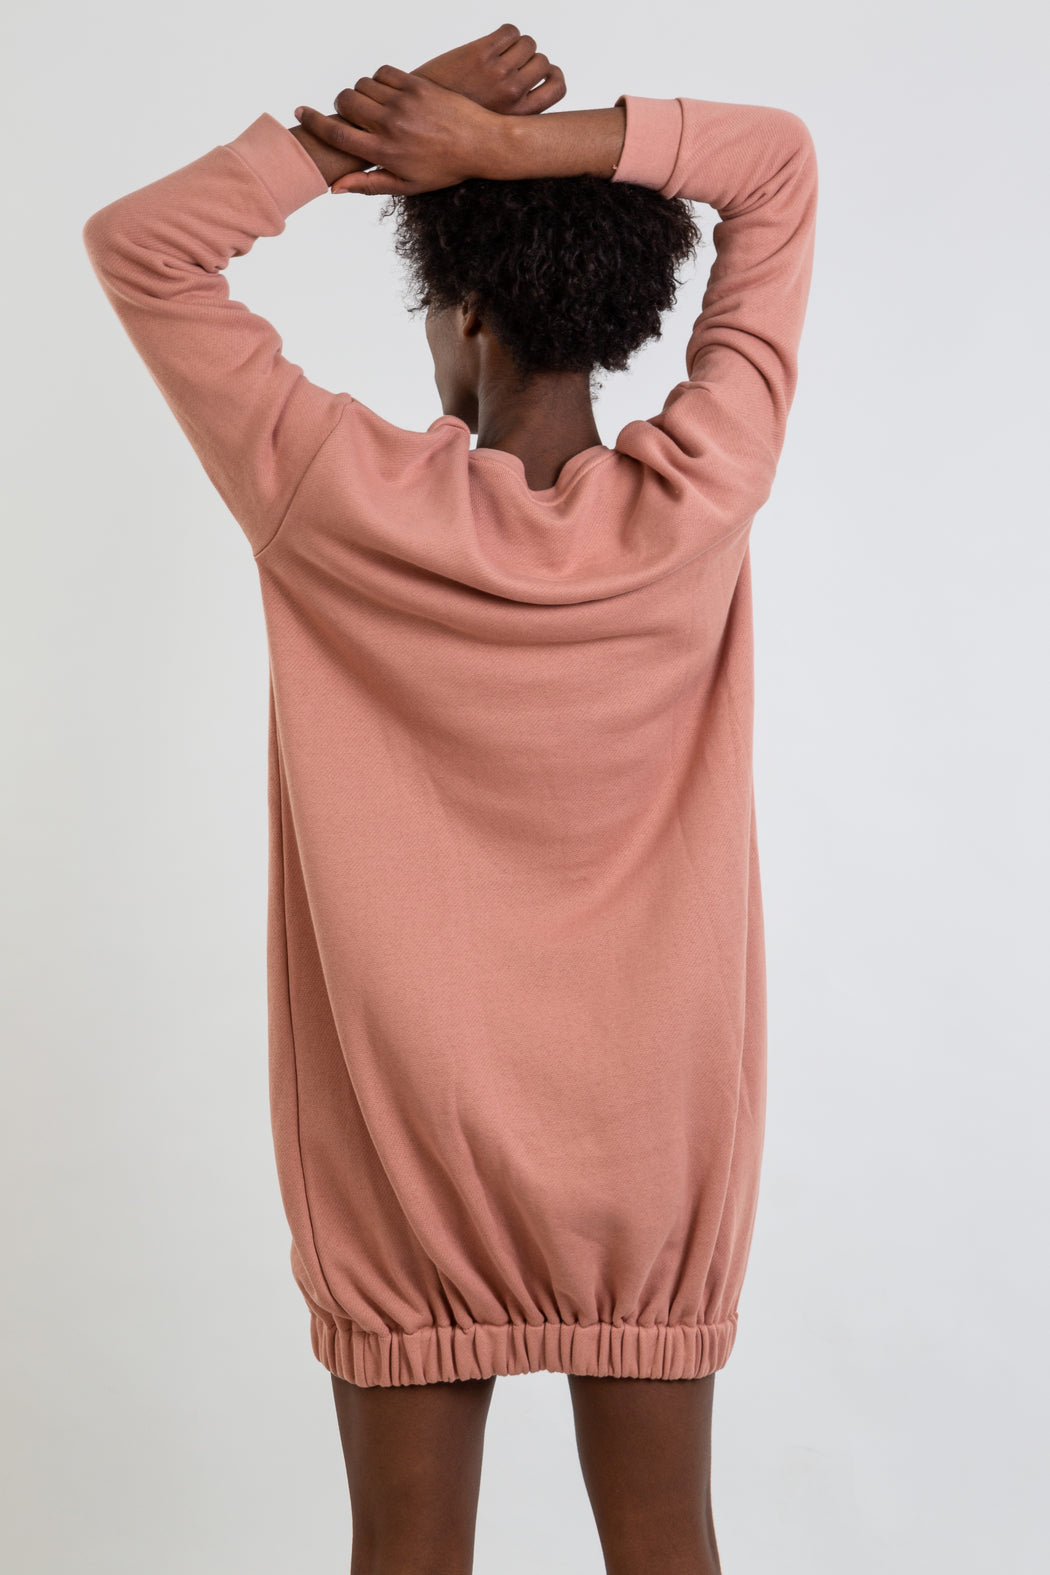 Organic Cotton Elastic Dress | Dresses & Jumpsuits | Näz | [product_tag] - Fair Bazaar Ethical Living